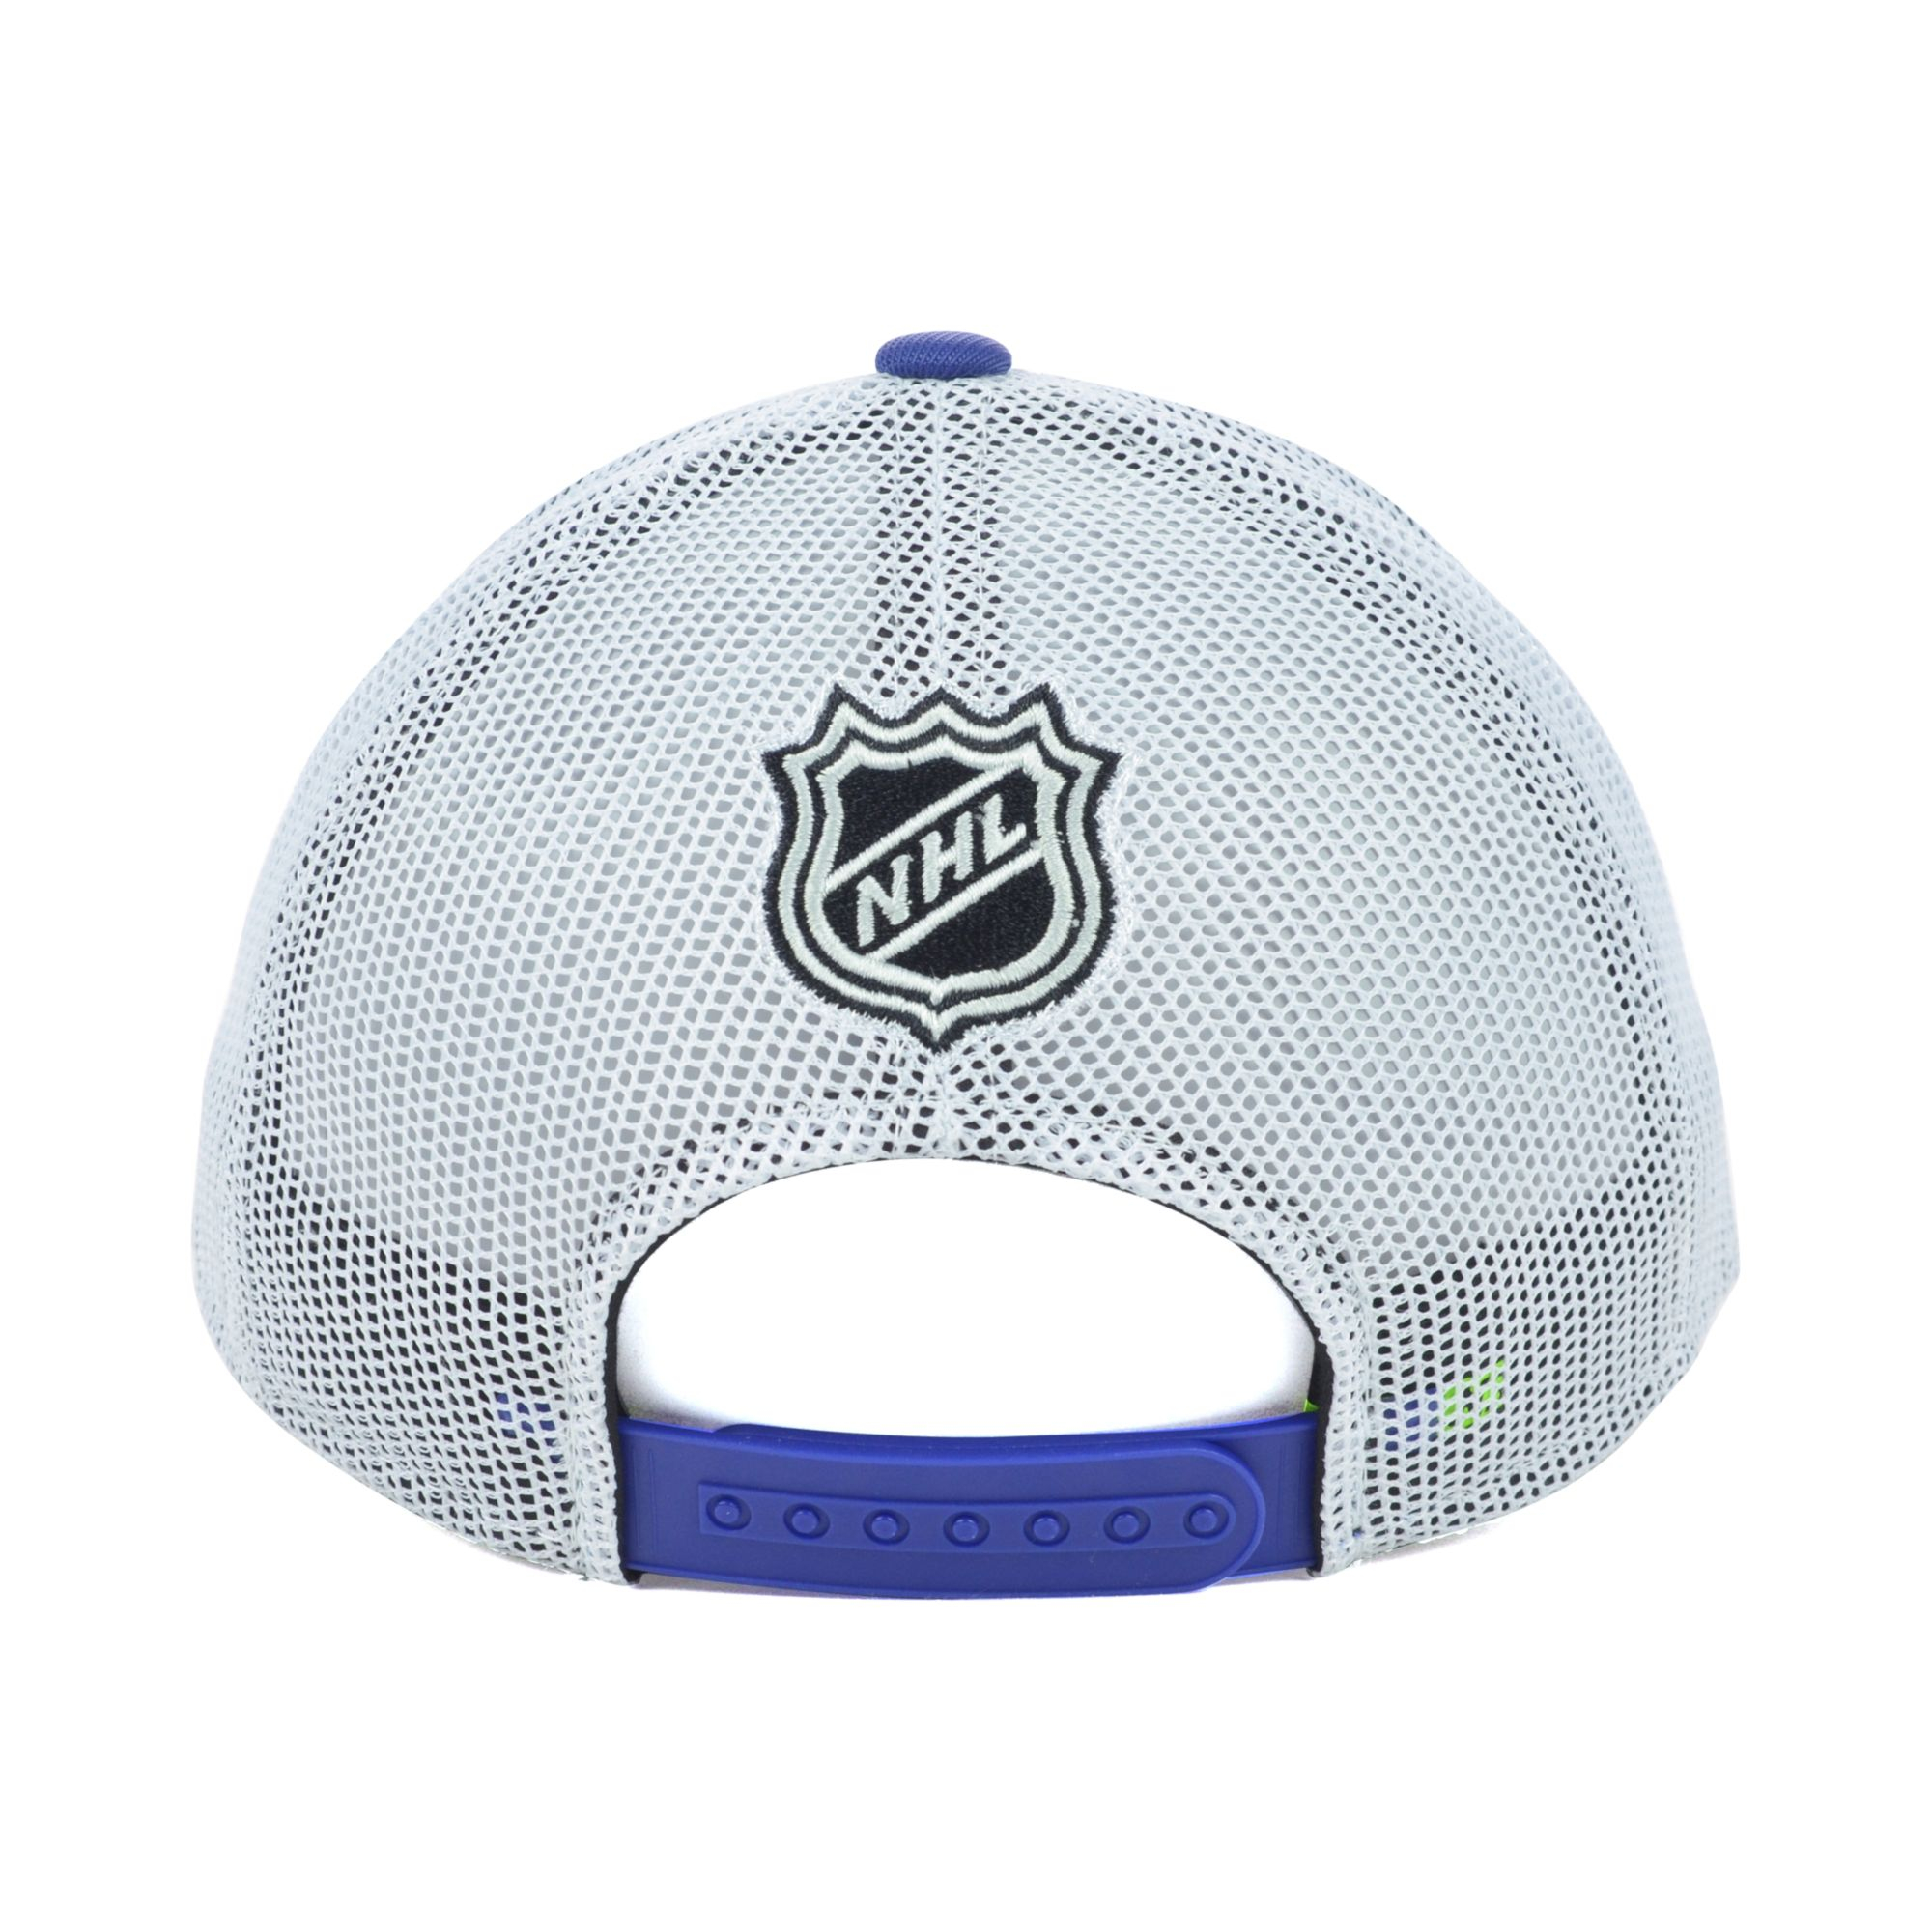 087b1896414 ... white fundamental adjustable hat 0ceba bfe2d  where to buy lyst reebok  tampa bay lightning nhl draft cap in blue for men c58e3